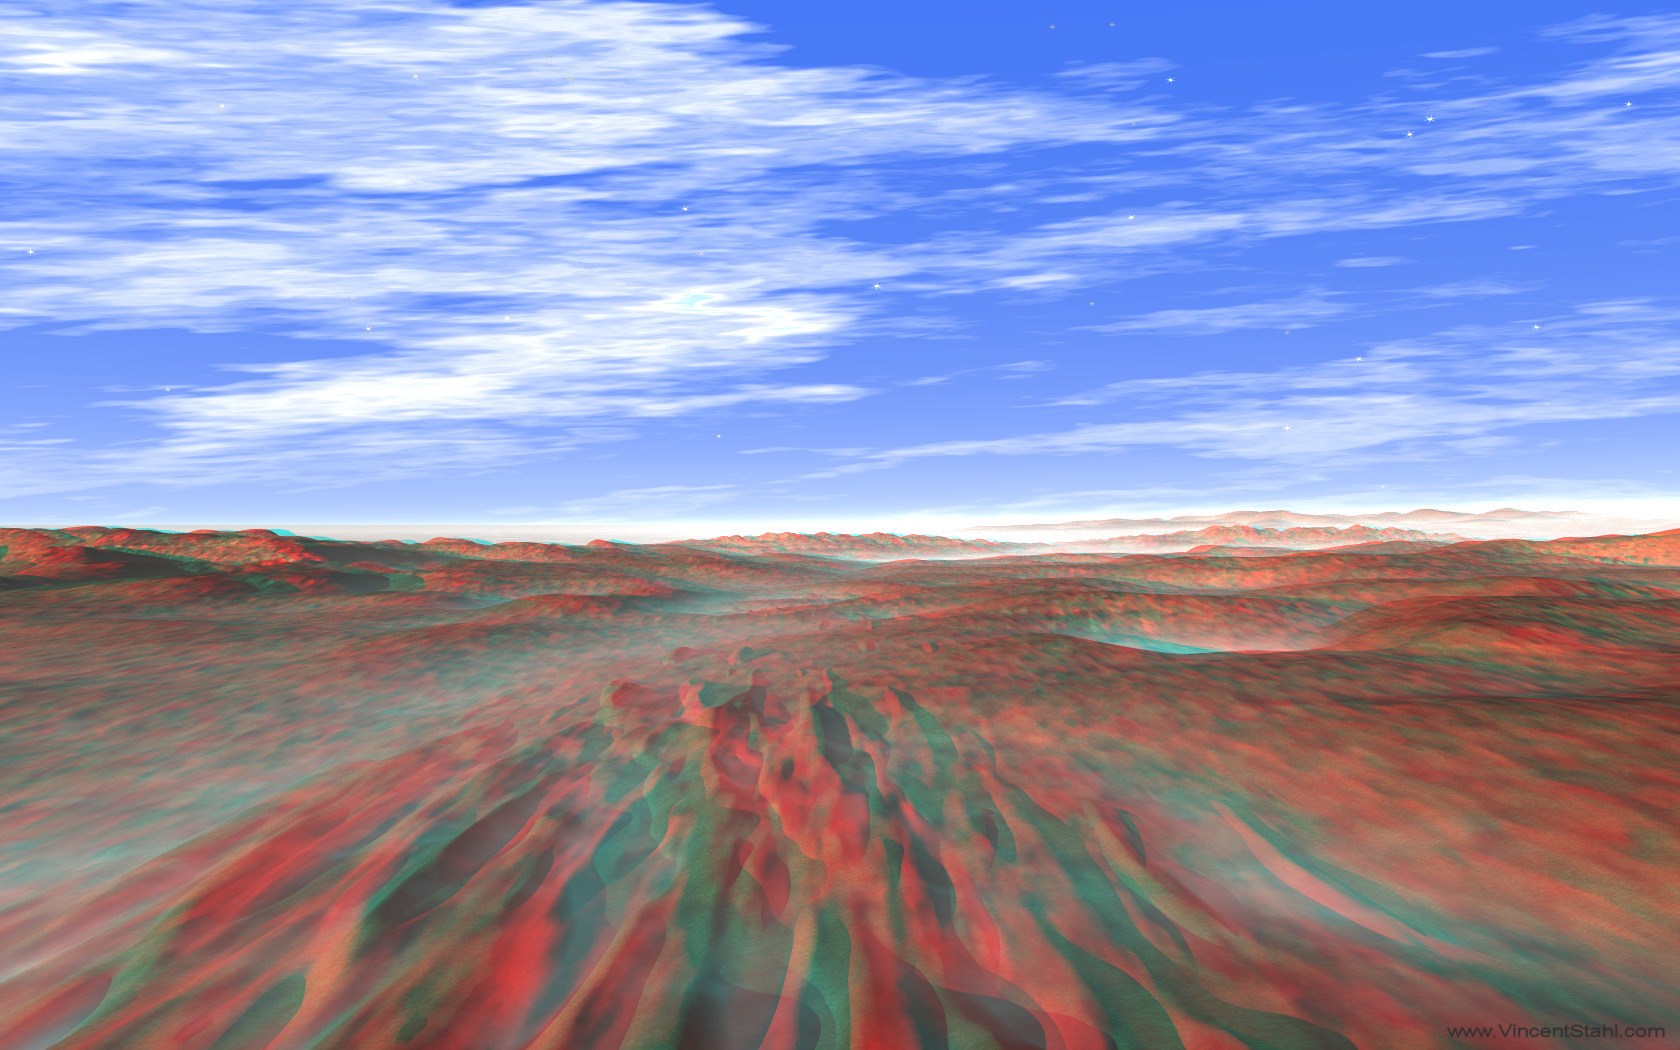 Red Mars Landscape - 3D stereo anaglyph color